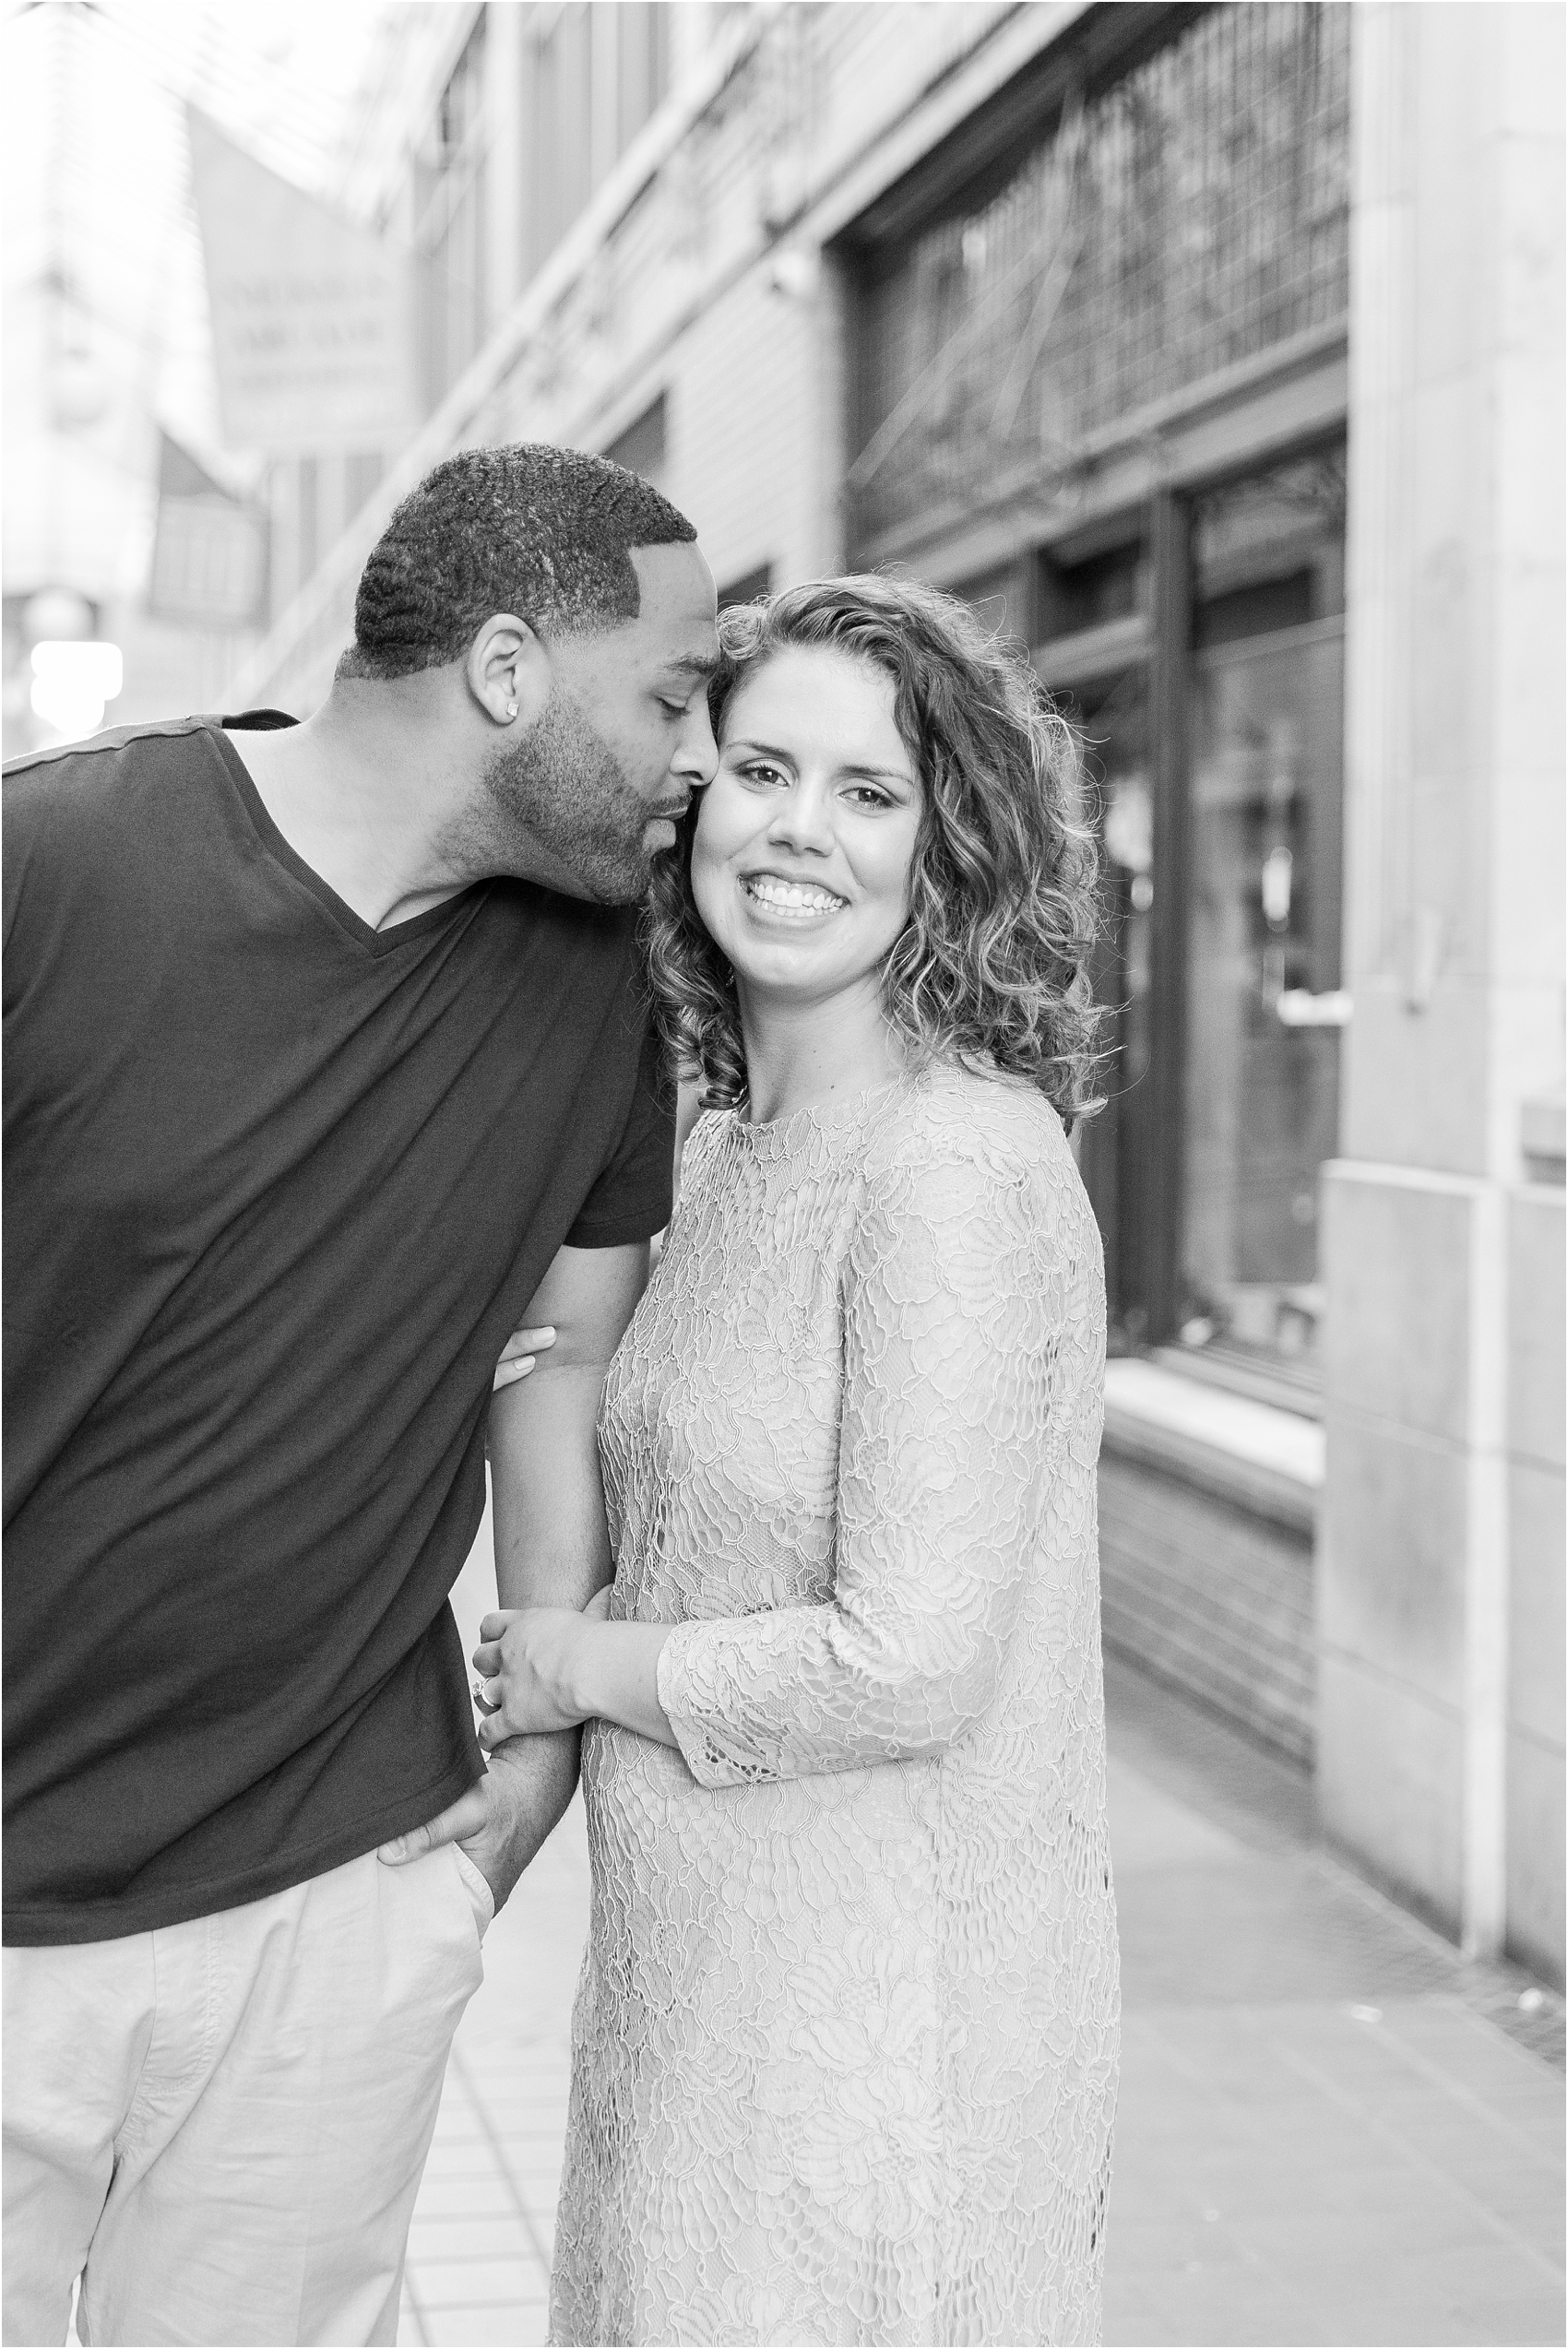 romantic-fun-university-of-michigan-engagement-photos-in-ann-arbor-mi-by-courtney-carolyn-photography_0032.jpg